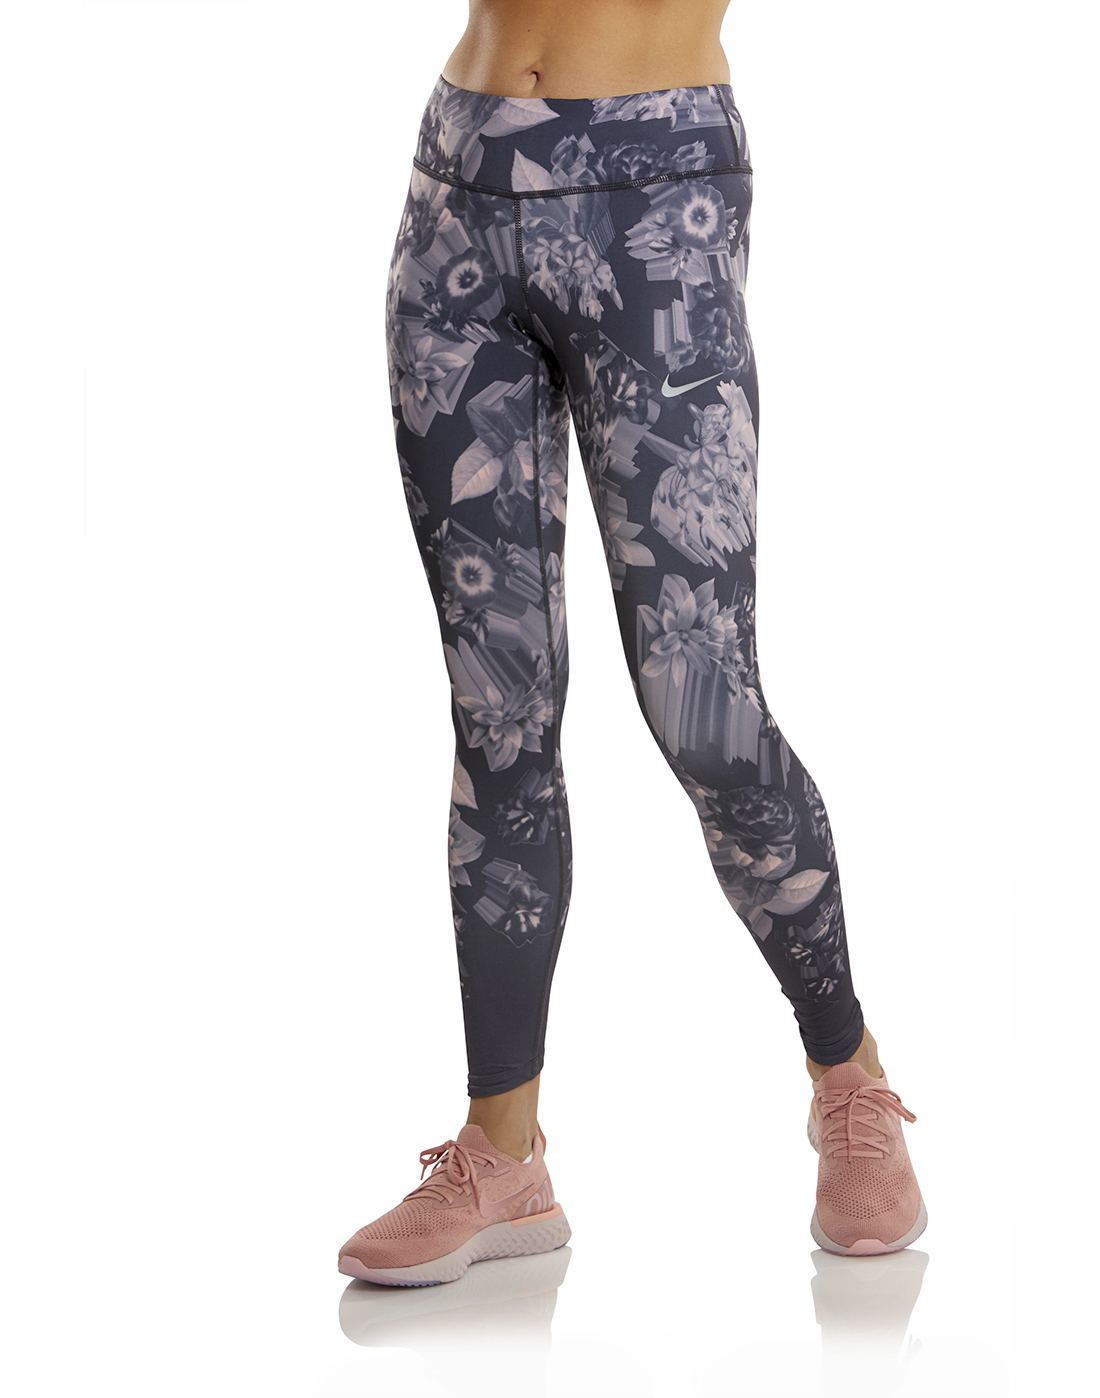 6f12e7020251 Women s Nike Lux Printed Tights